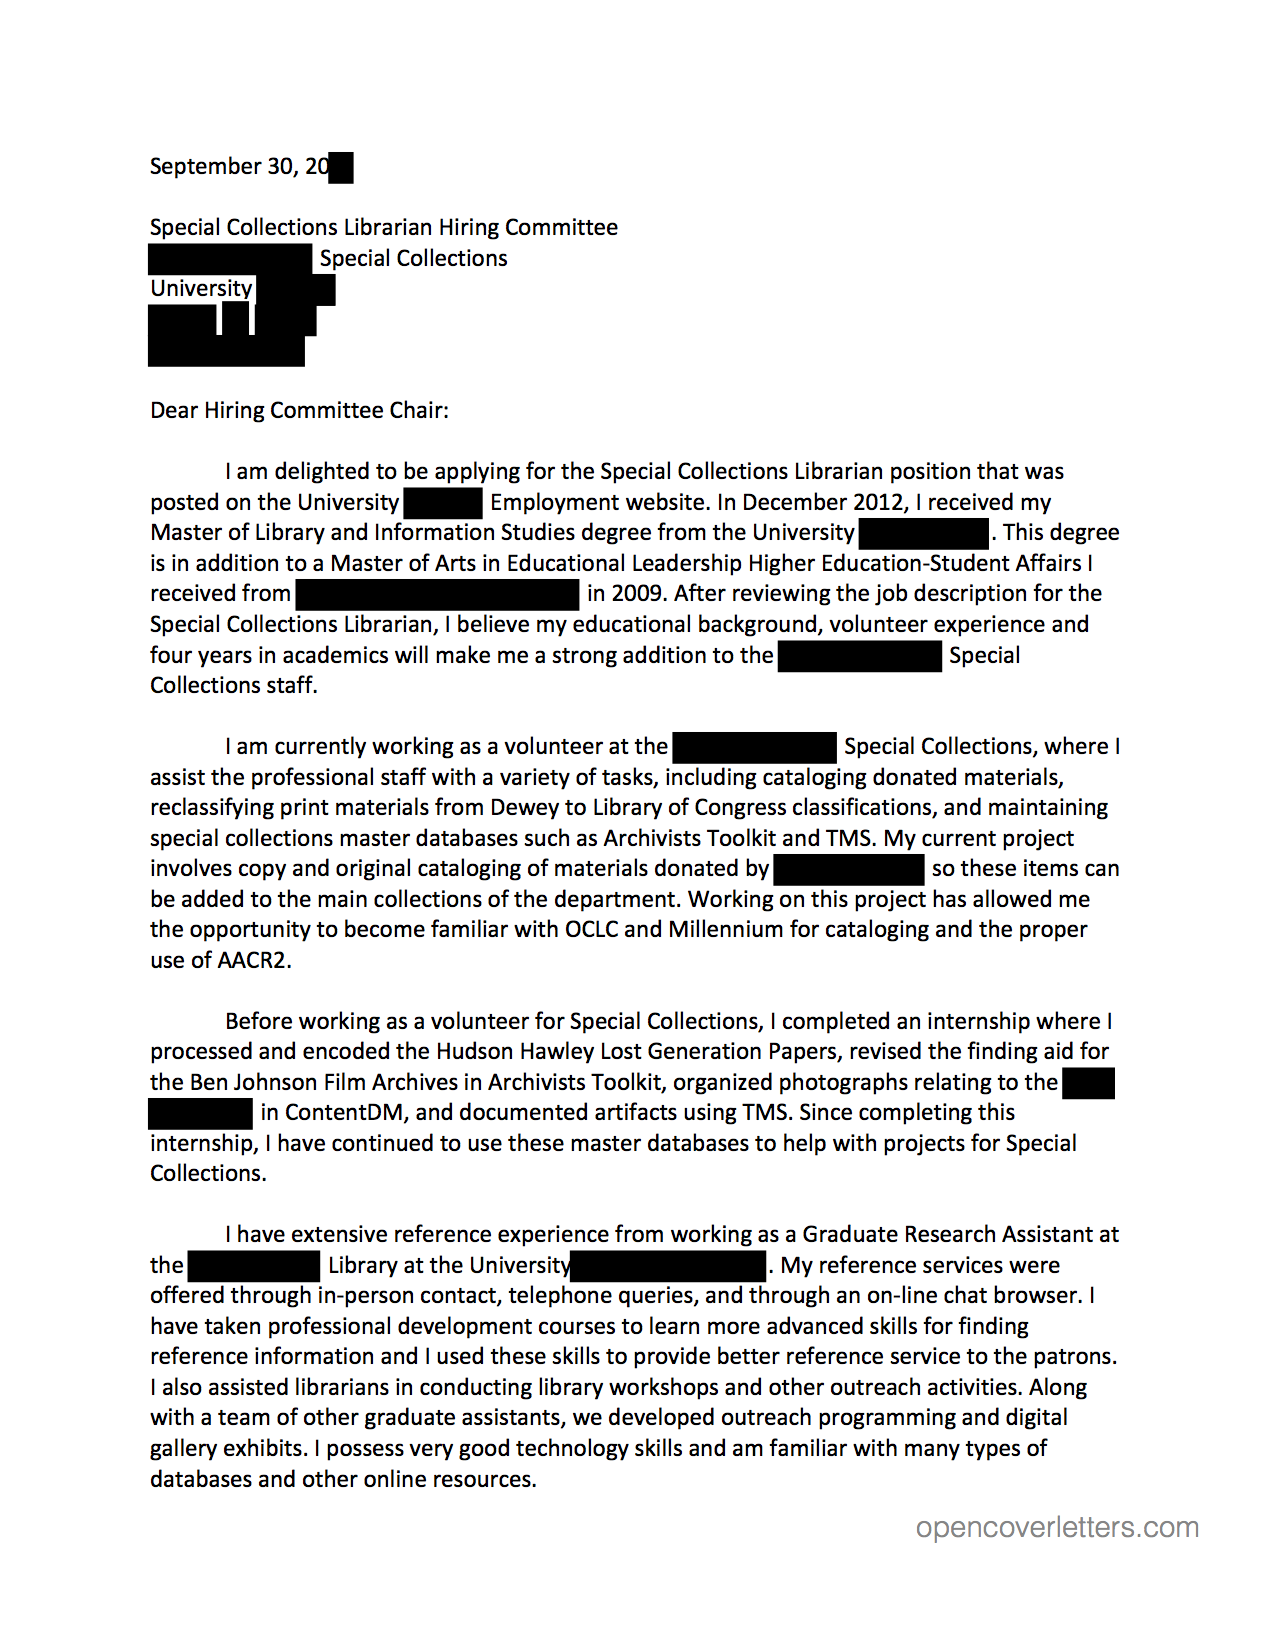 Awesome Best Cover Letter Opening